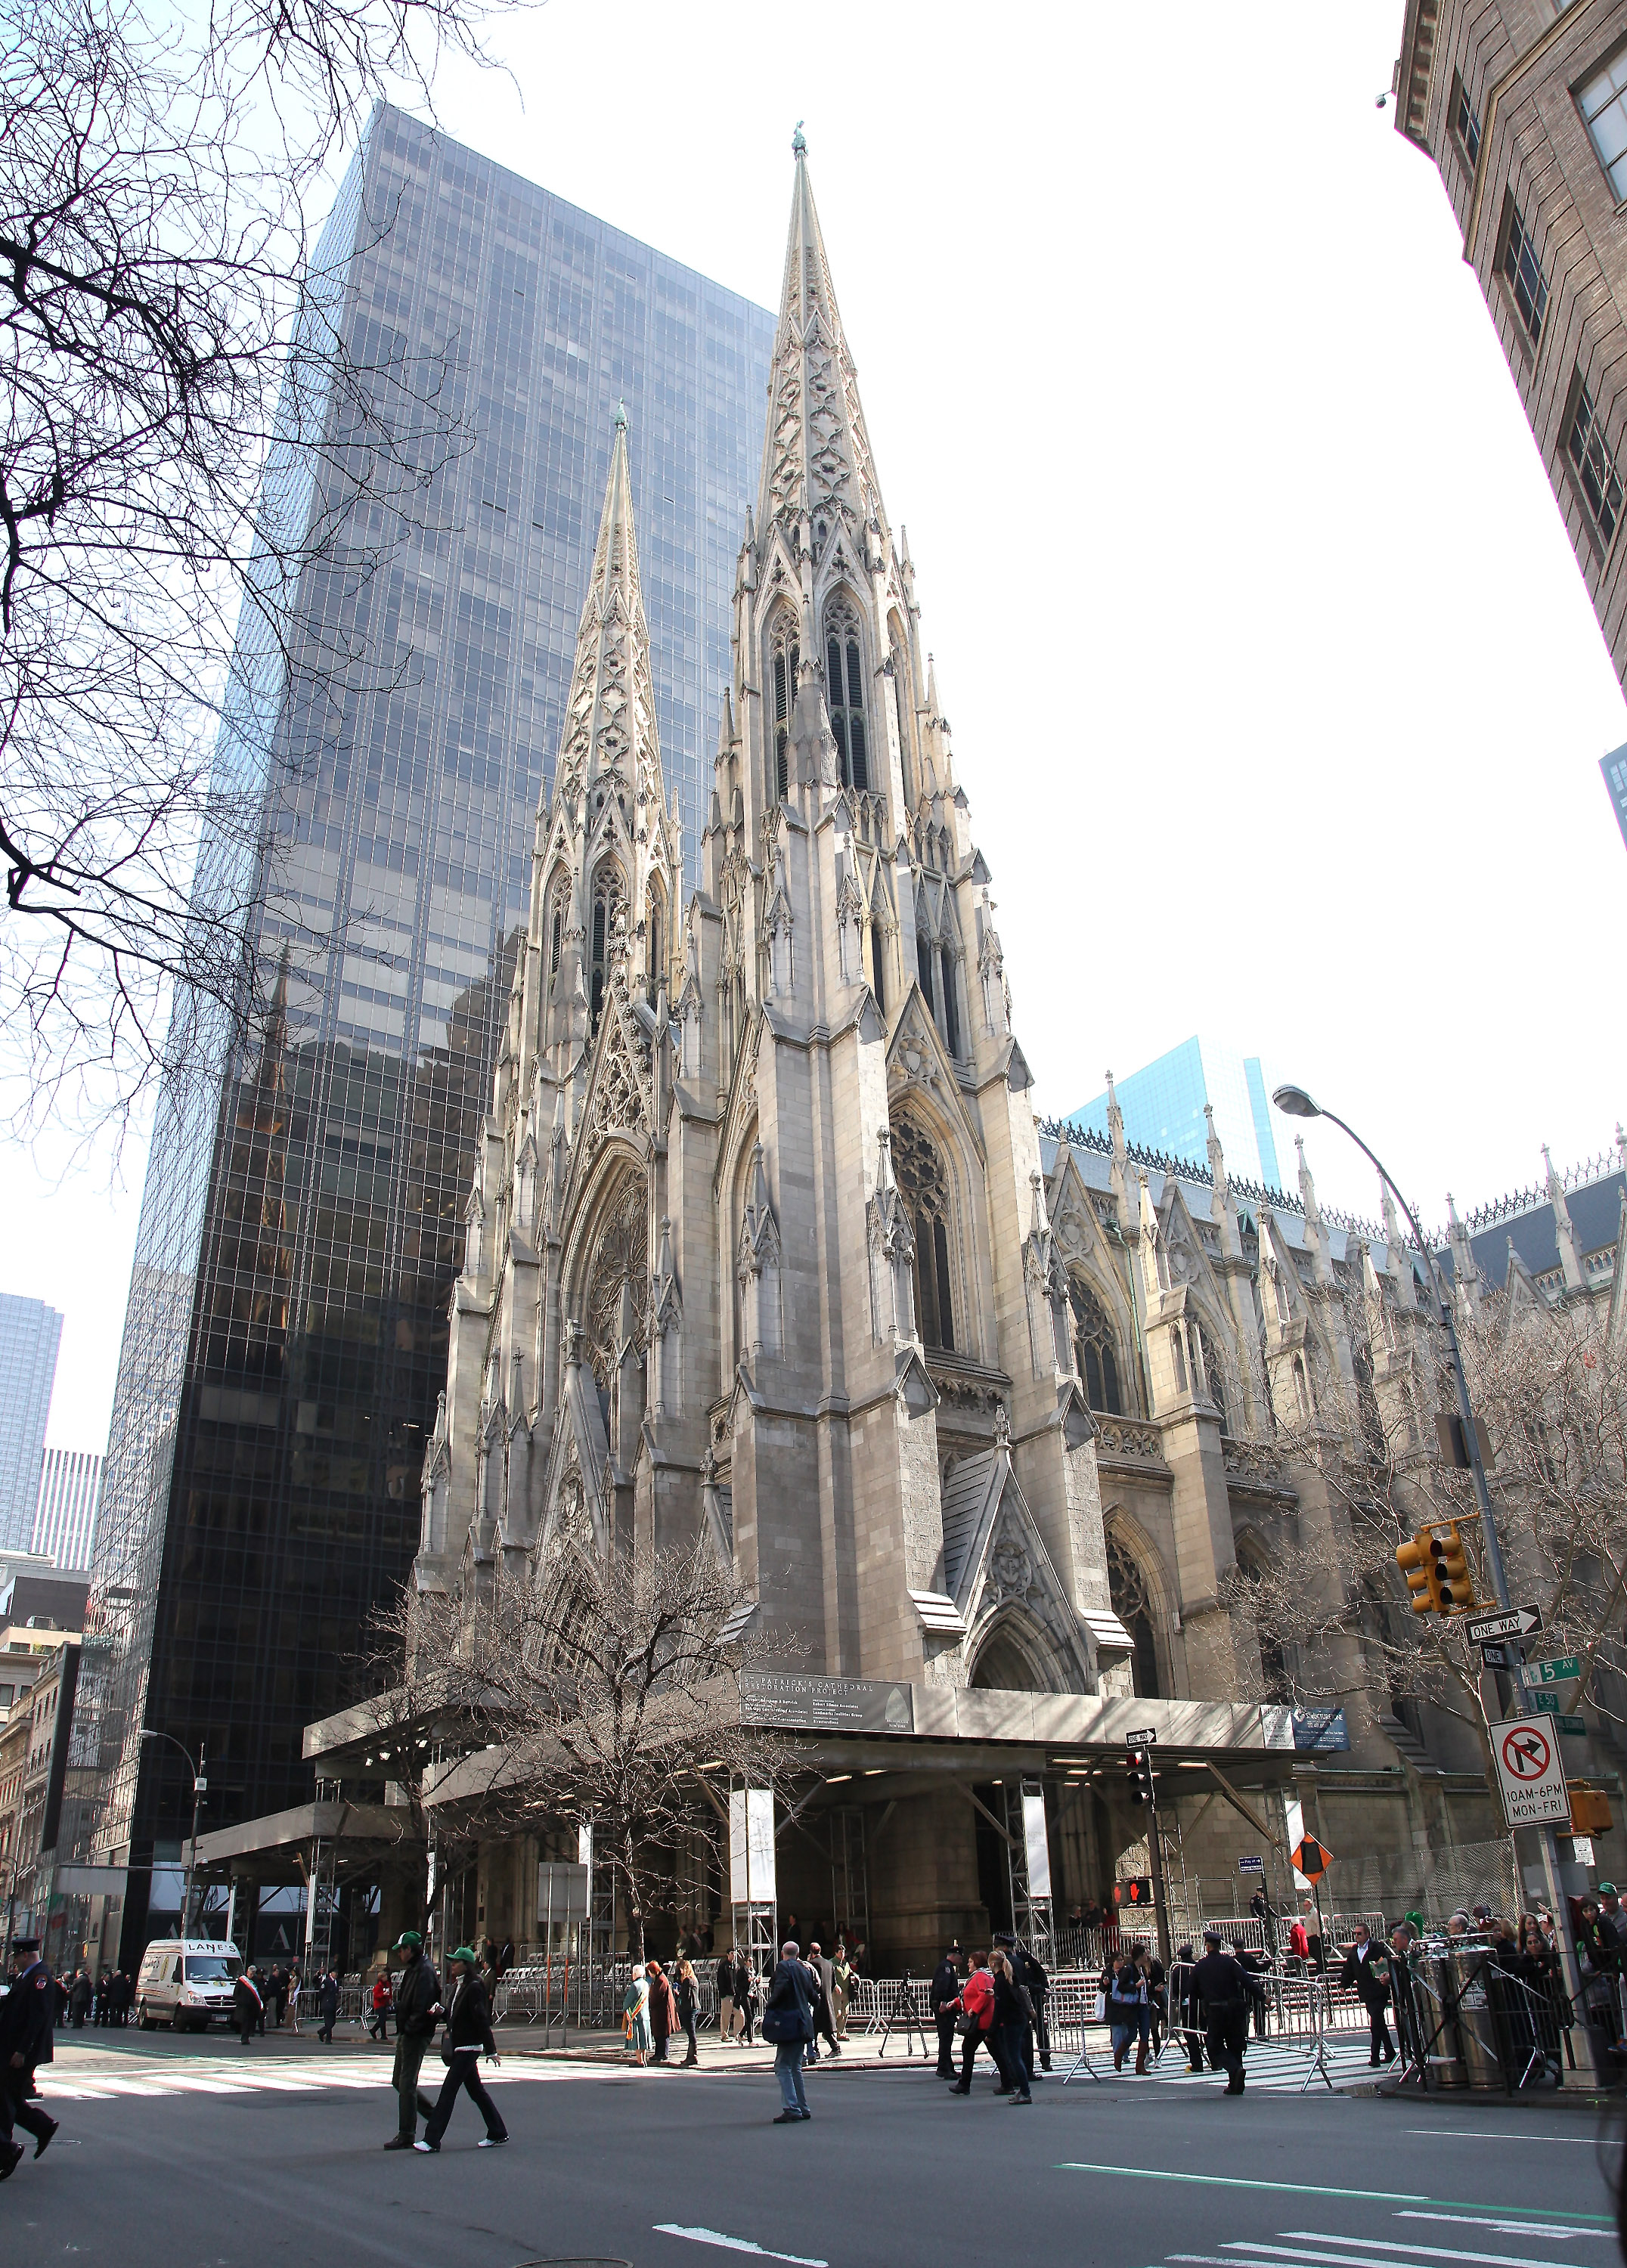 Saint Patrick's Cathedral at the 251st annual St. Patrick's Day parade on the March 17, 2012 in New York, United States.